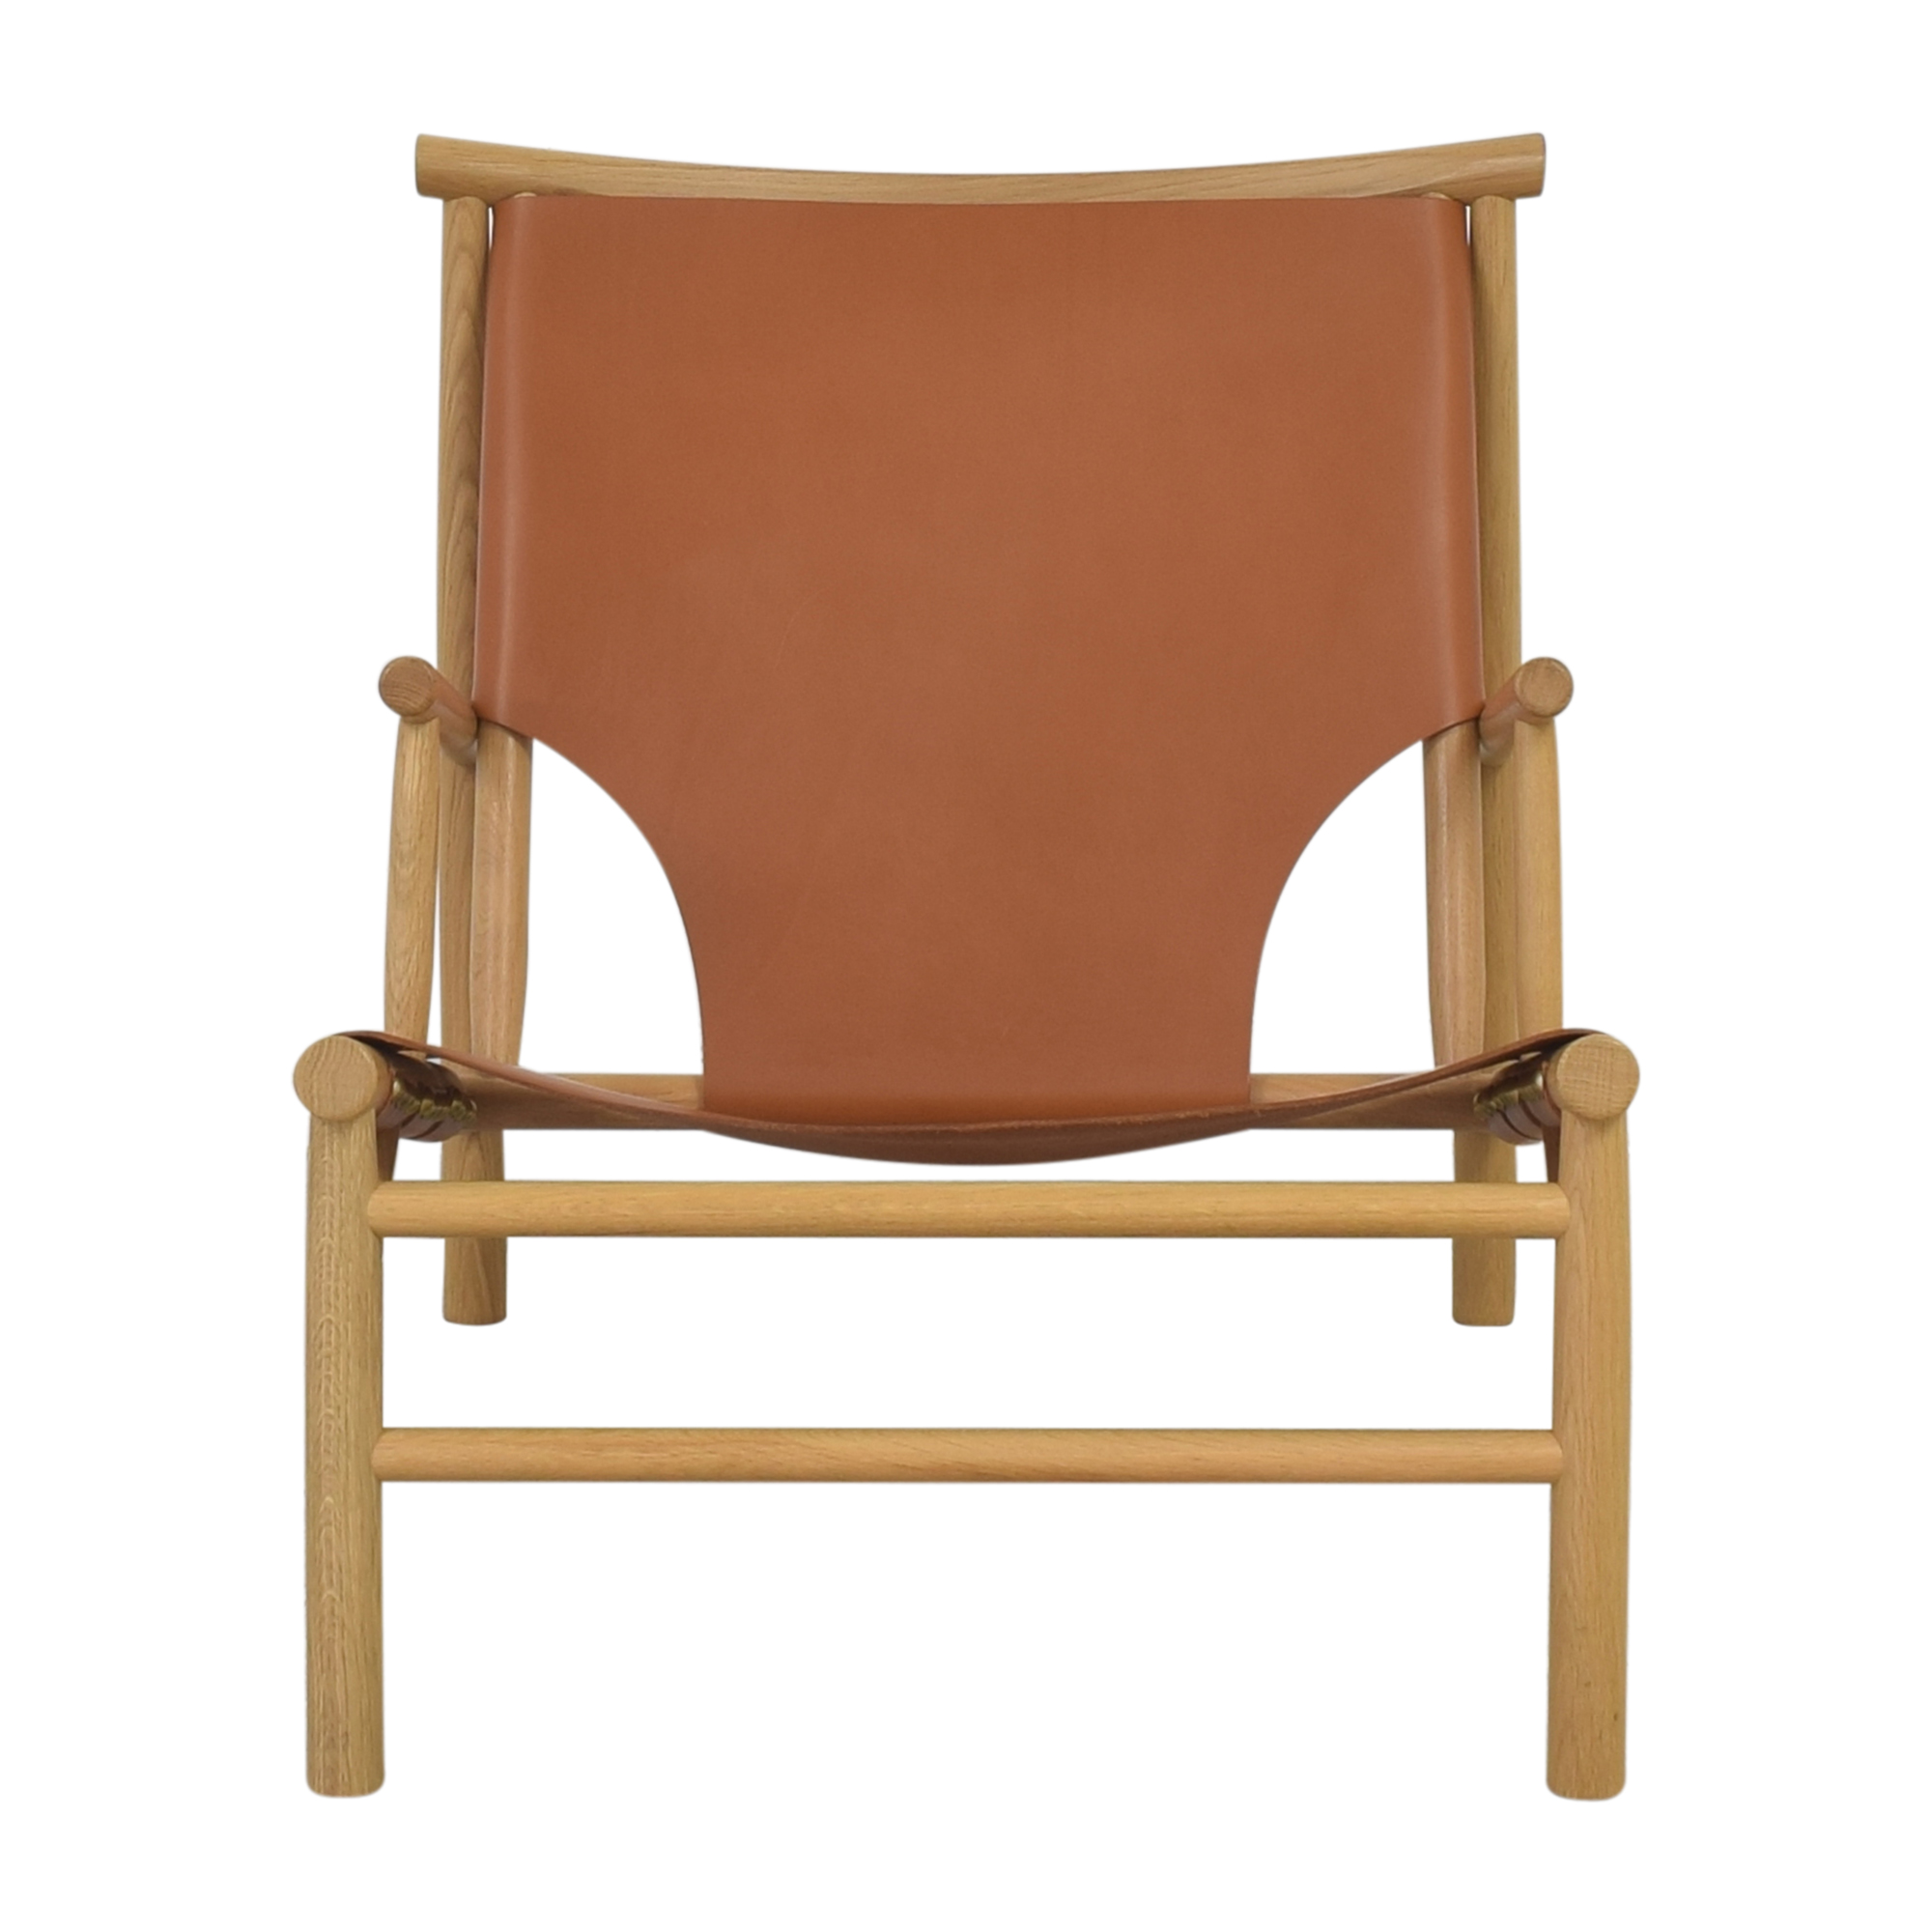 NORR11 NORR11 Samurai Lounge Chair natural and brown